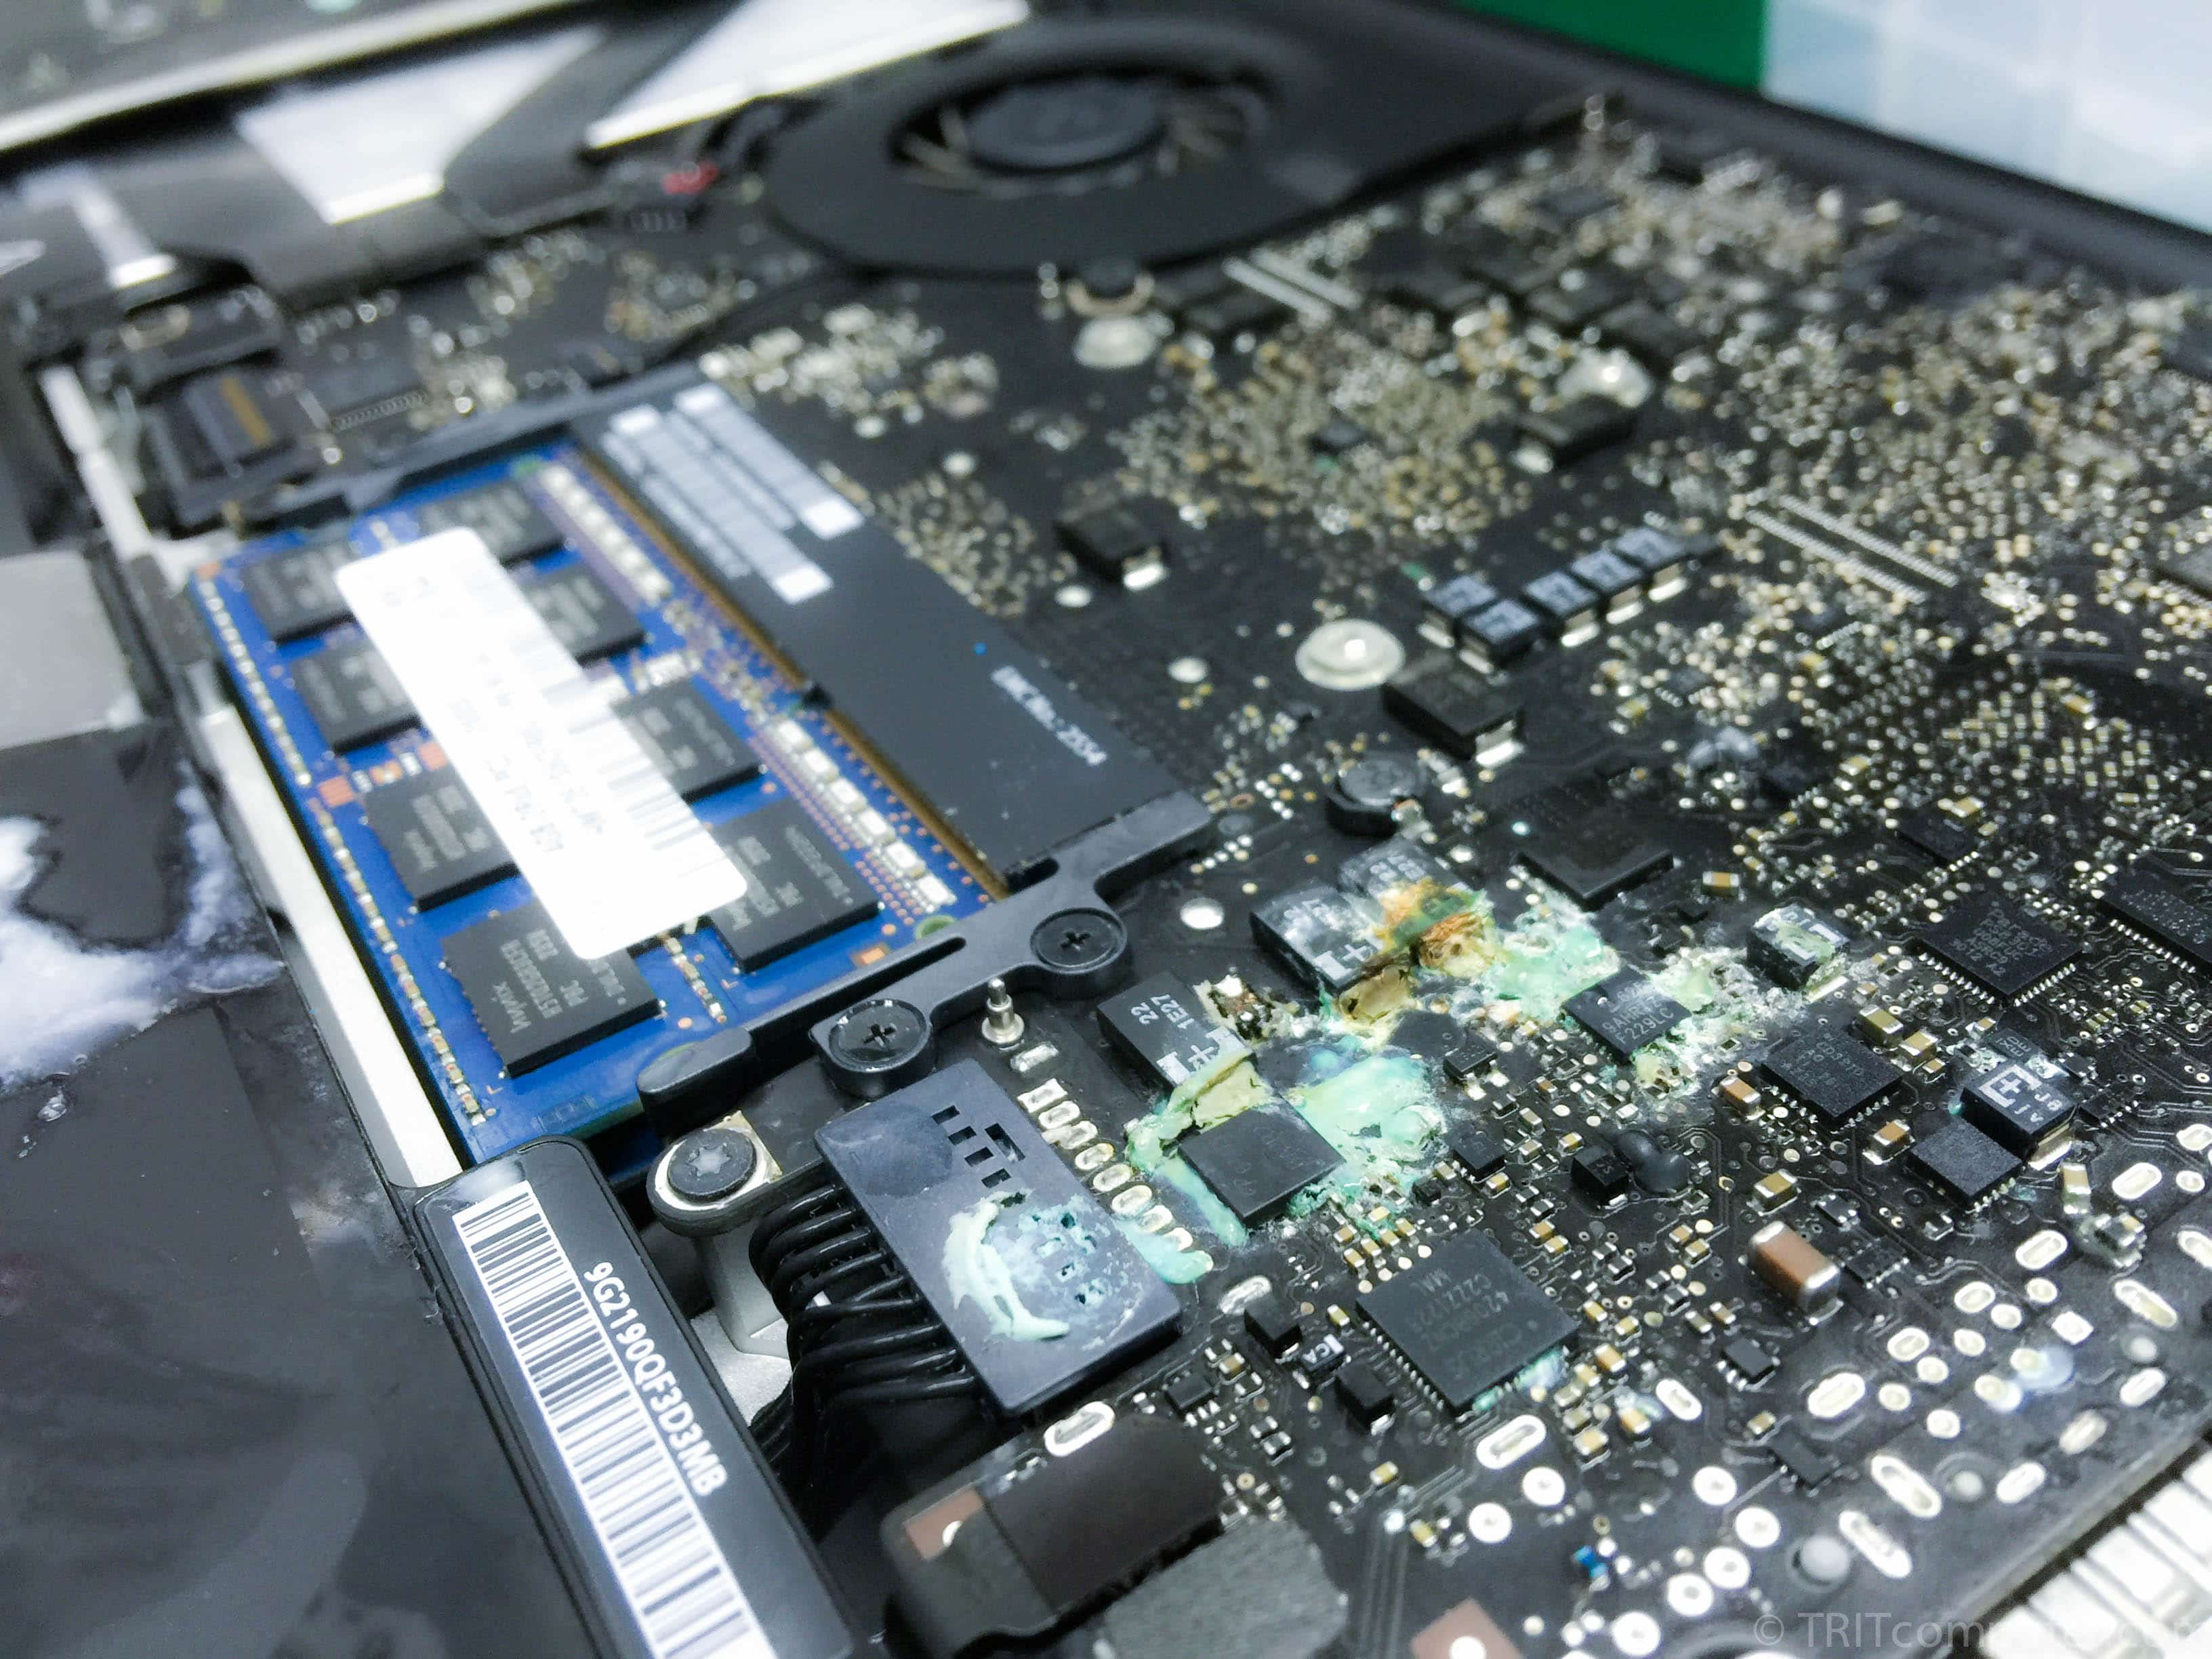 macbook-water-damage-liquid-damge-service-apple-macbook-pro-air-water-liquid-spill-damaged-repair-computer-techfix-malaysia